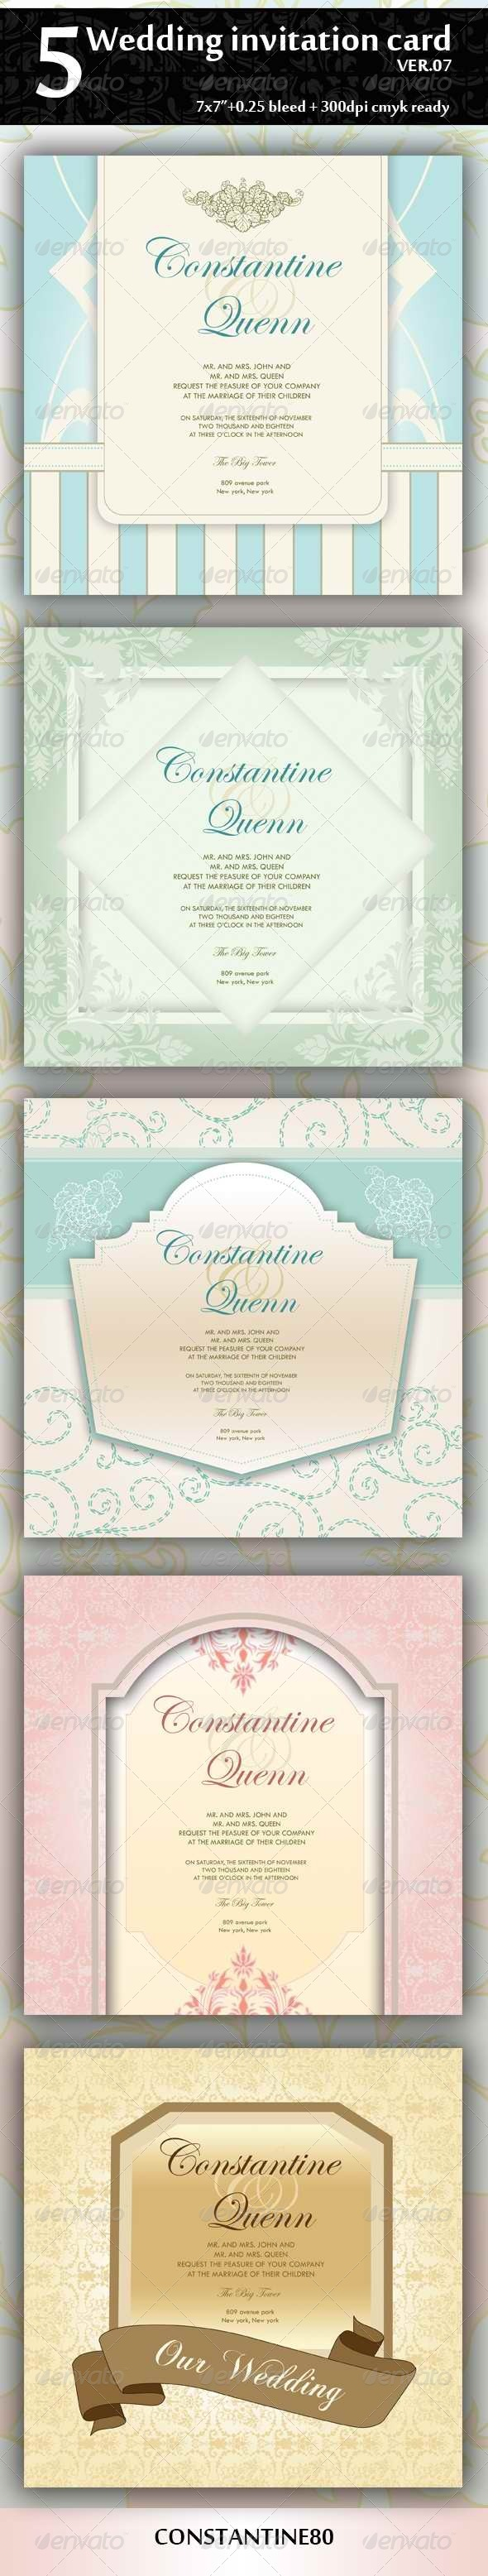 GraphicRiver 5 Wedding Invitation 7x7 ver07 4394247